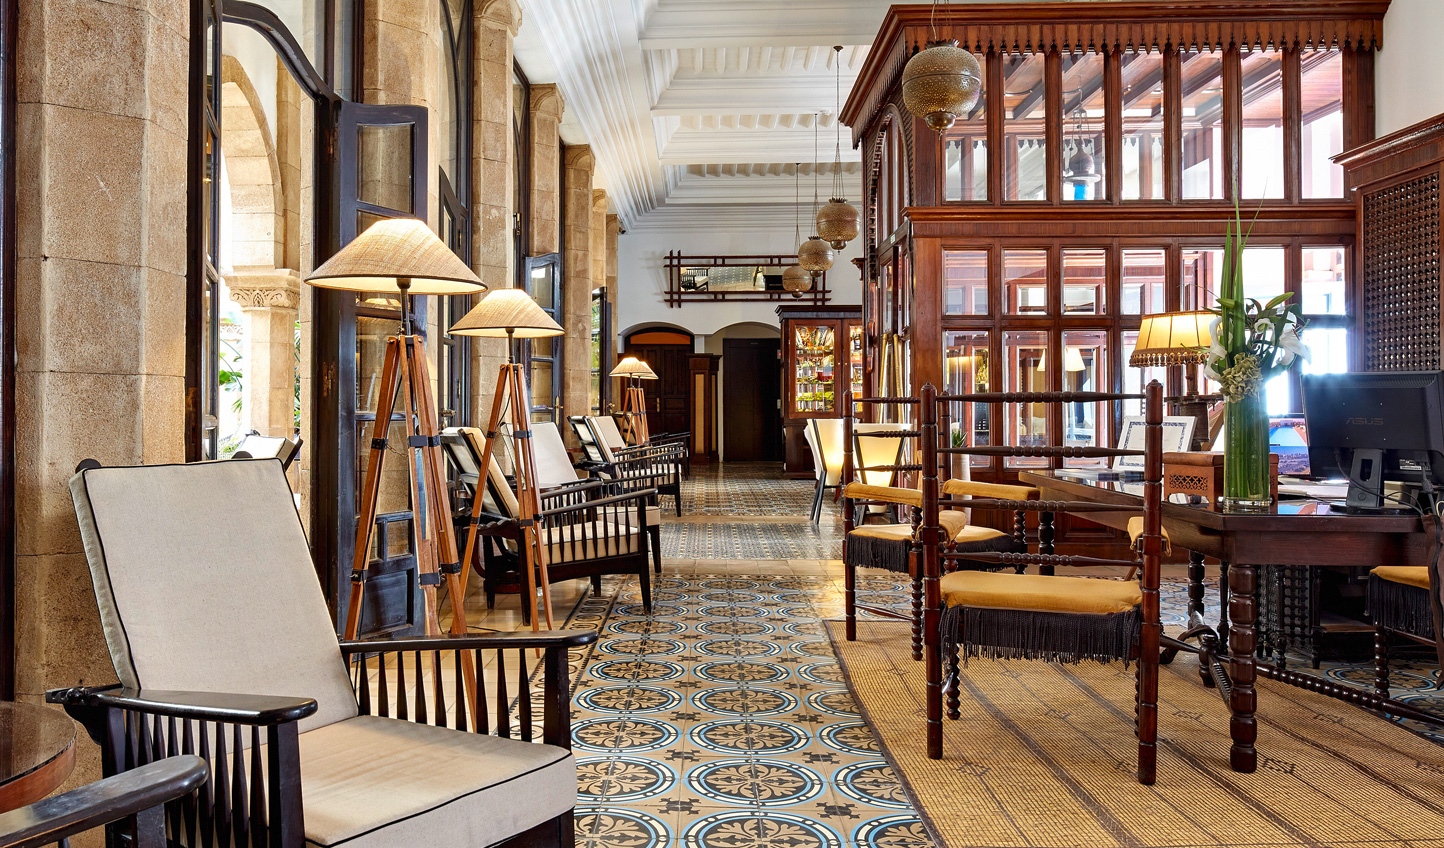 Old world Moroccan charm greets you the moment you step inside L'Heure Bleue